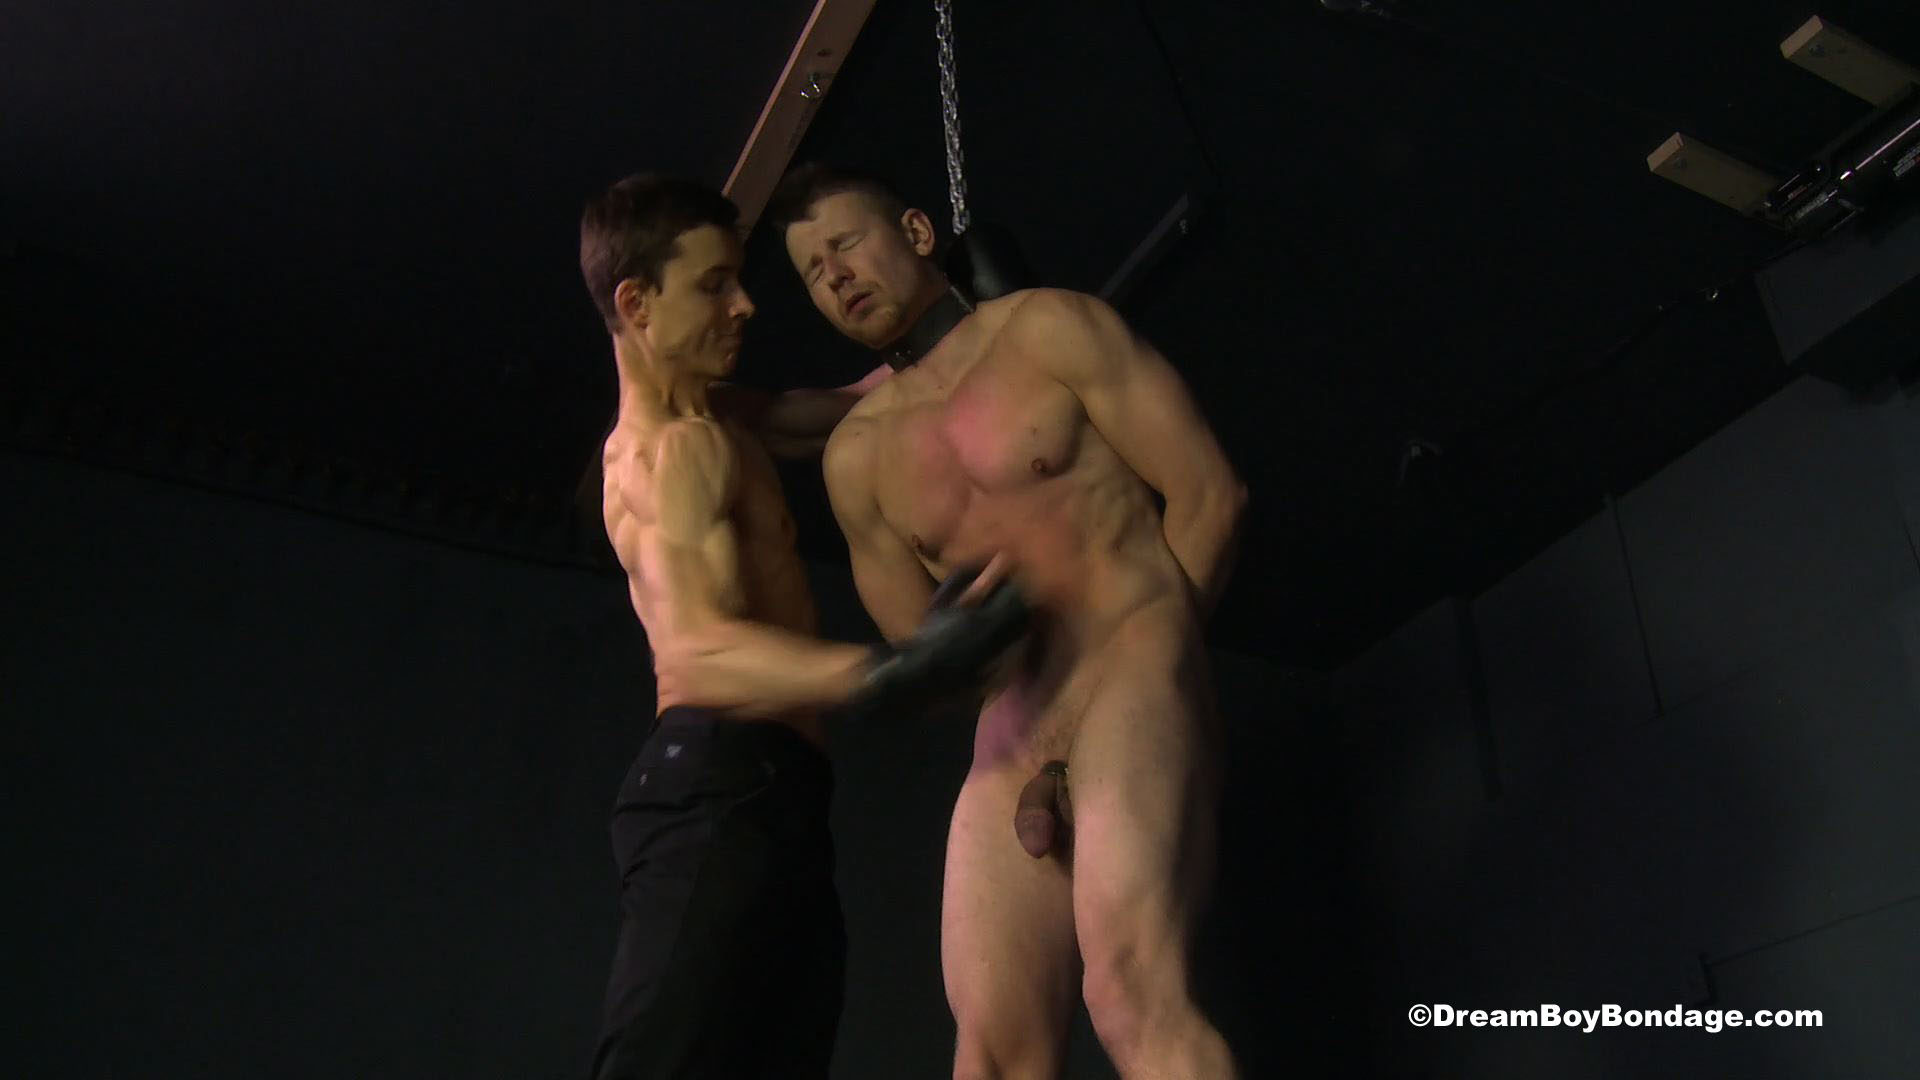 from Ameer gay bondage free videos